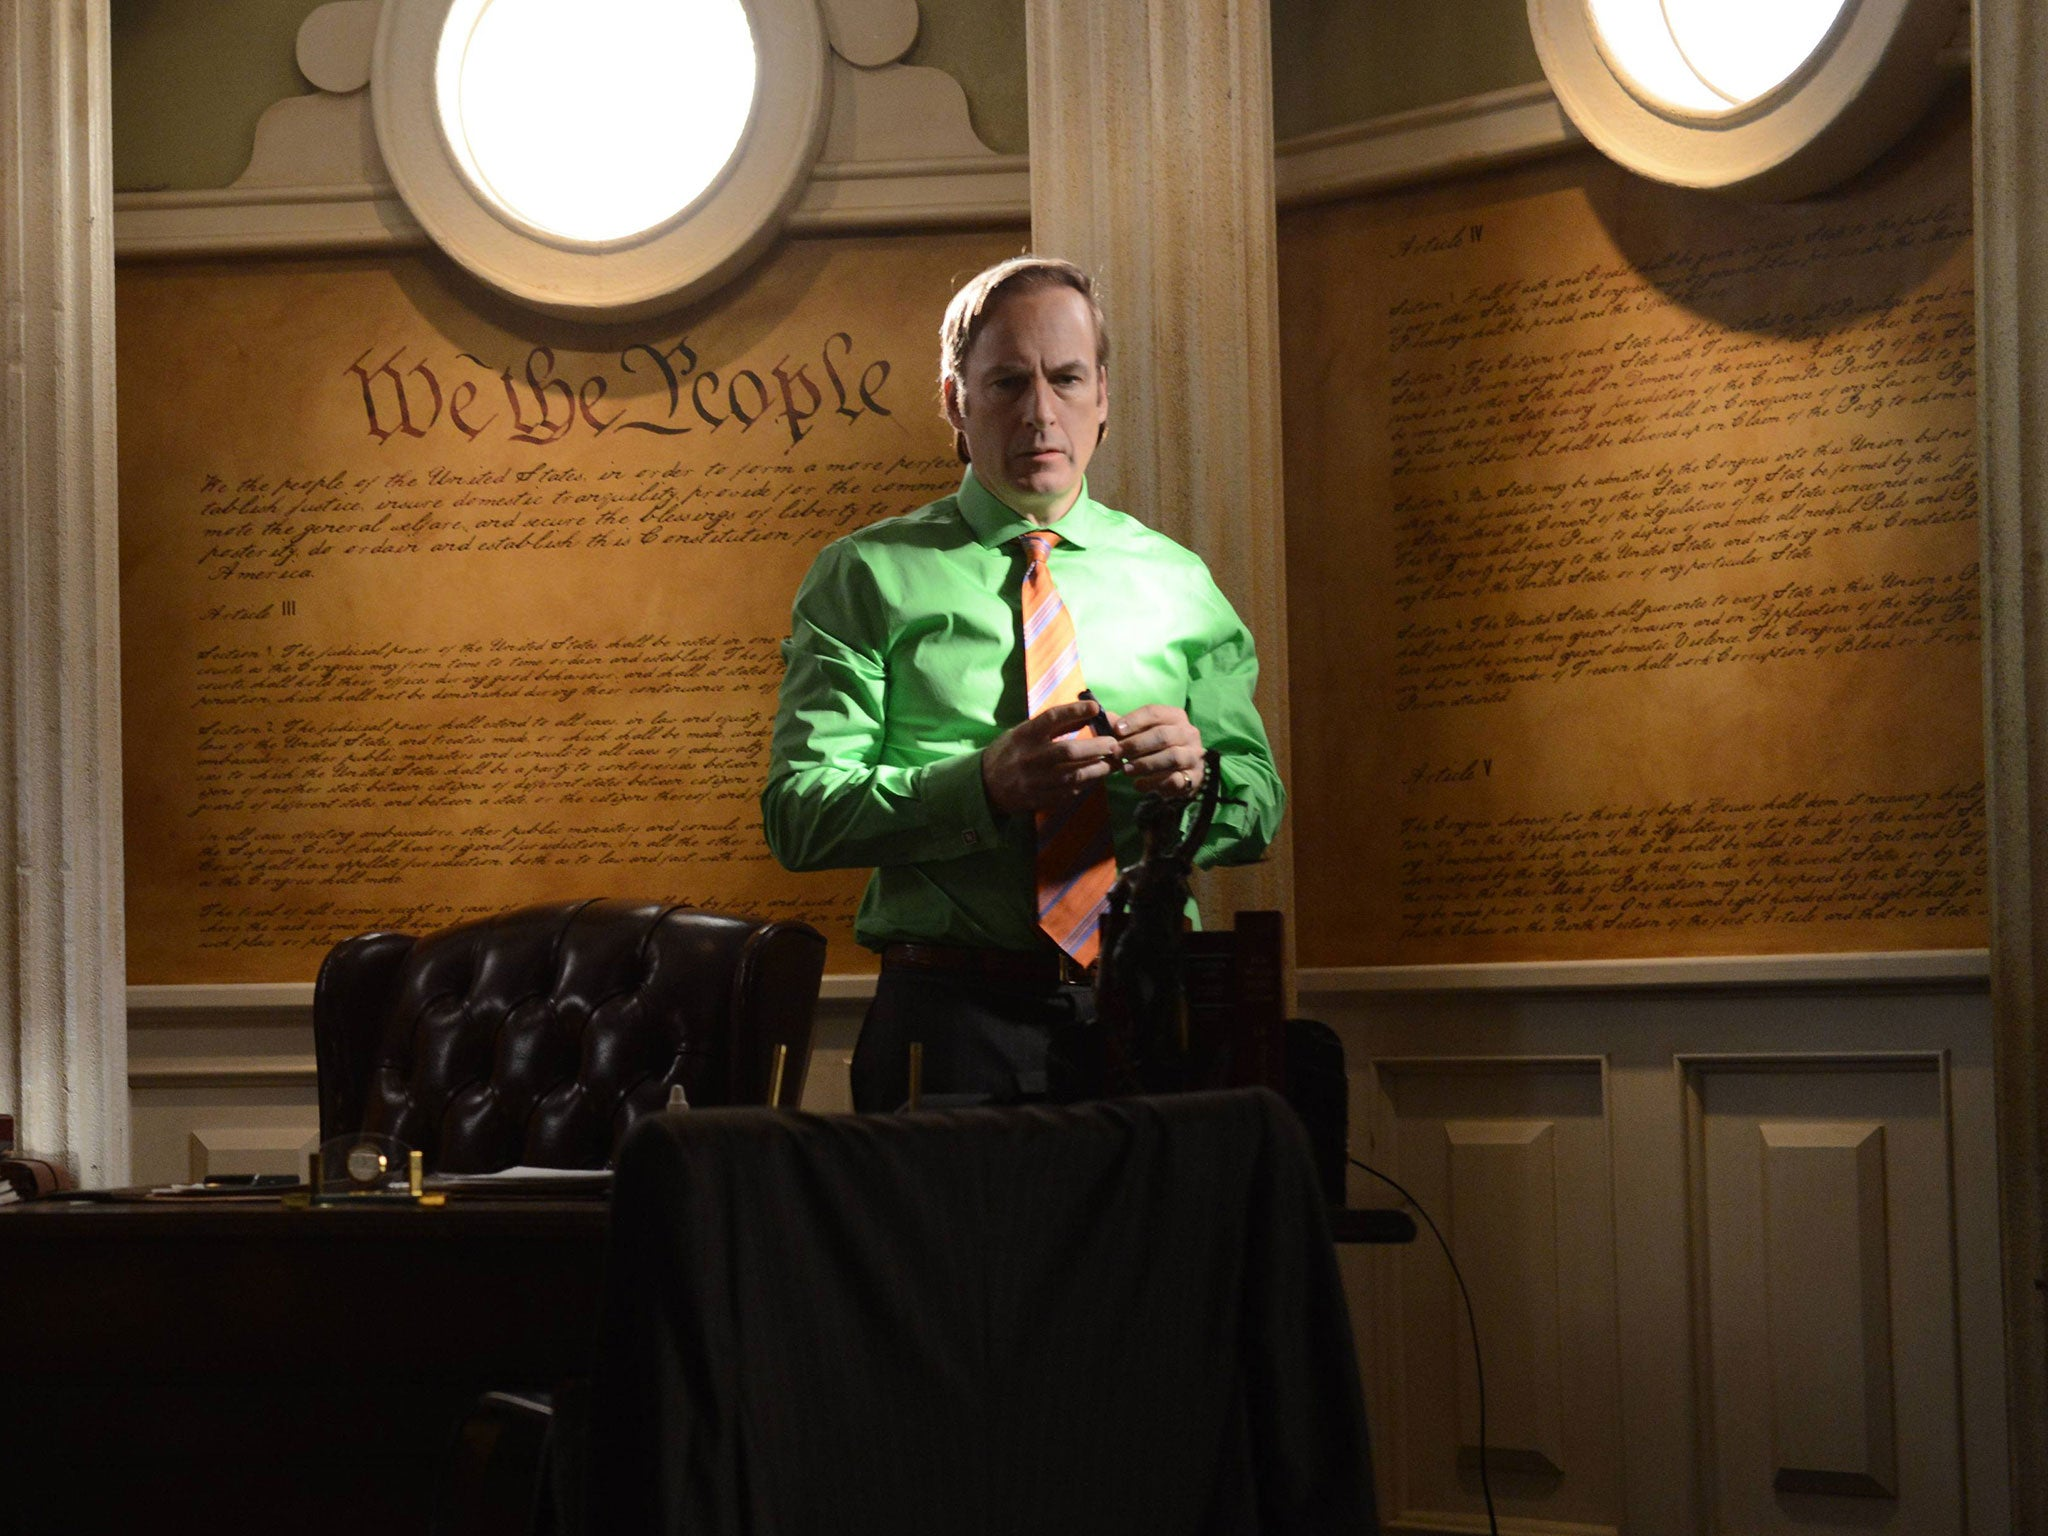 Better Call Saul season 3 will be the first time we get to see Saul Goodman